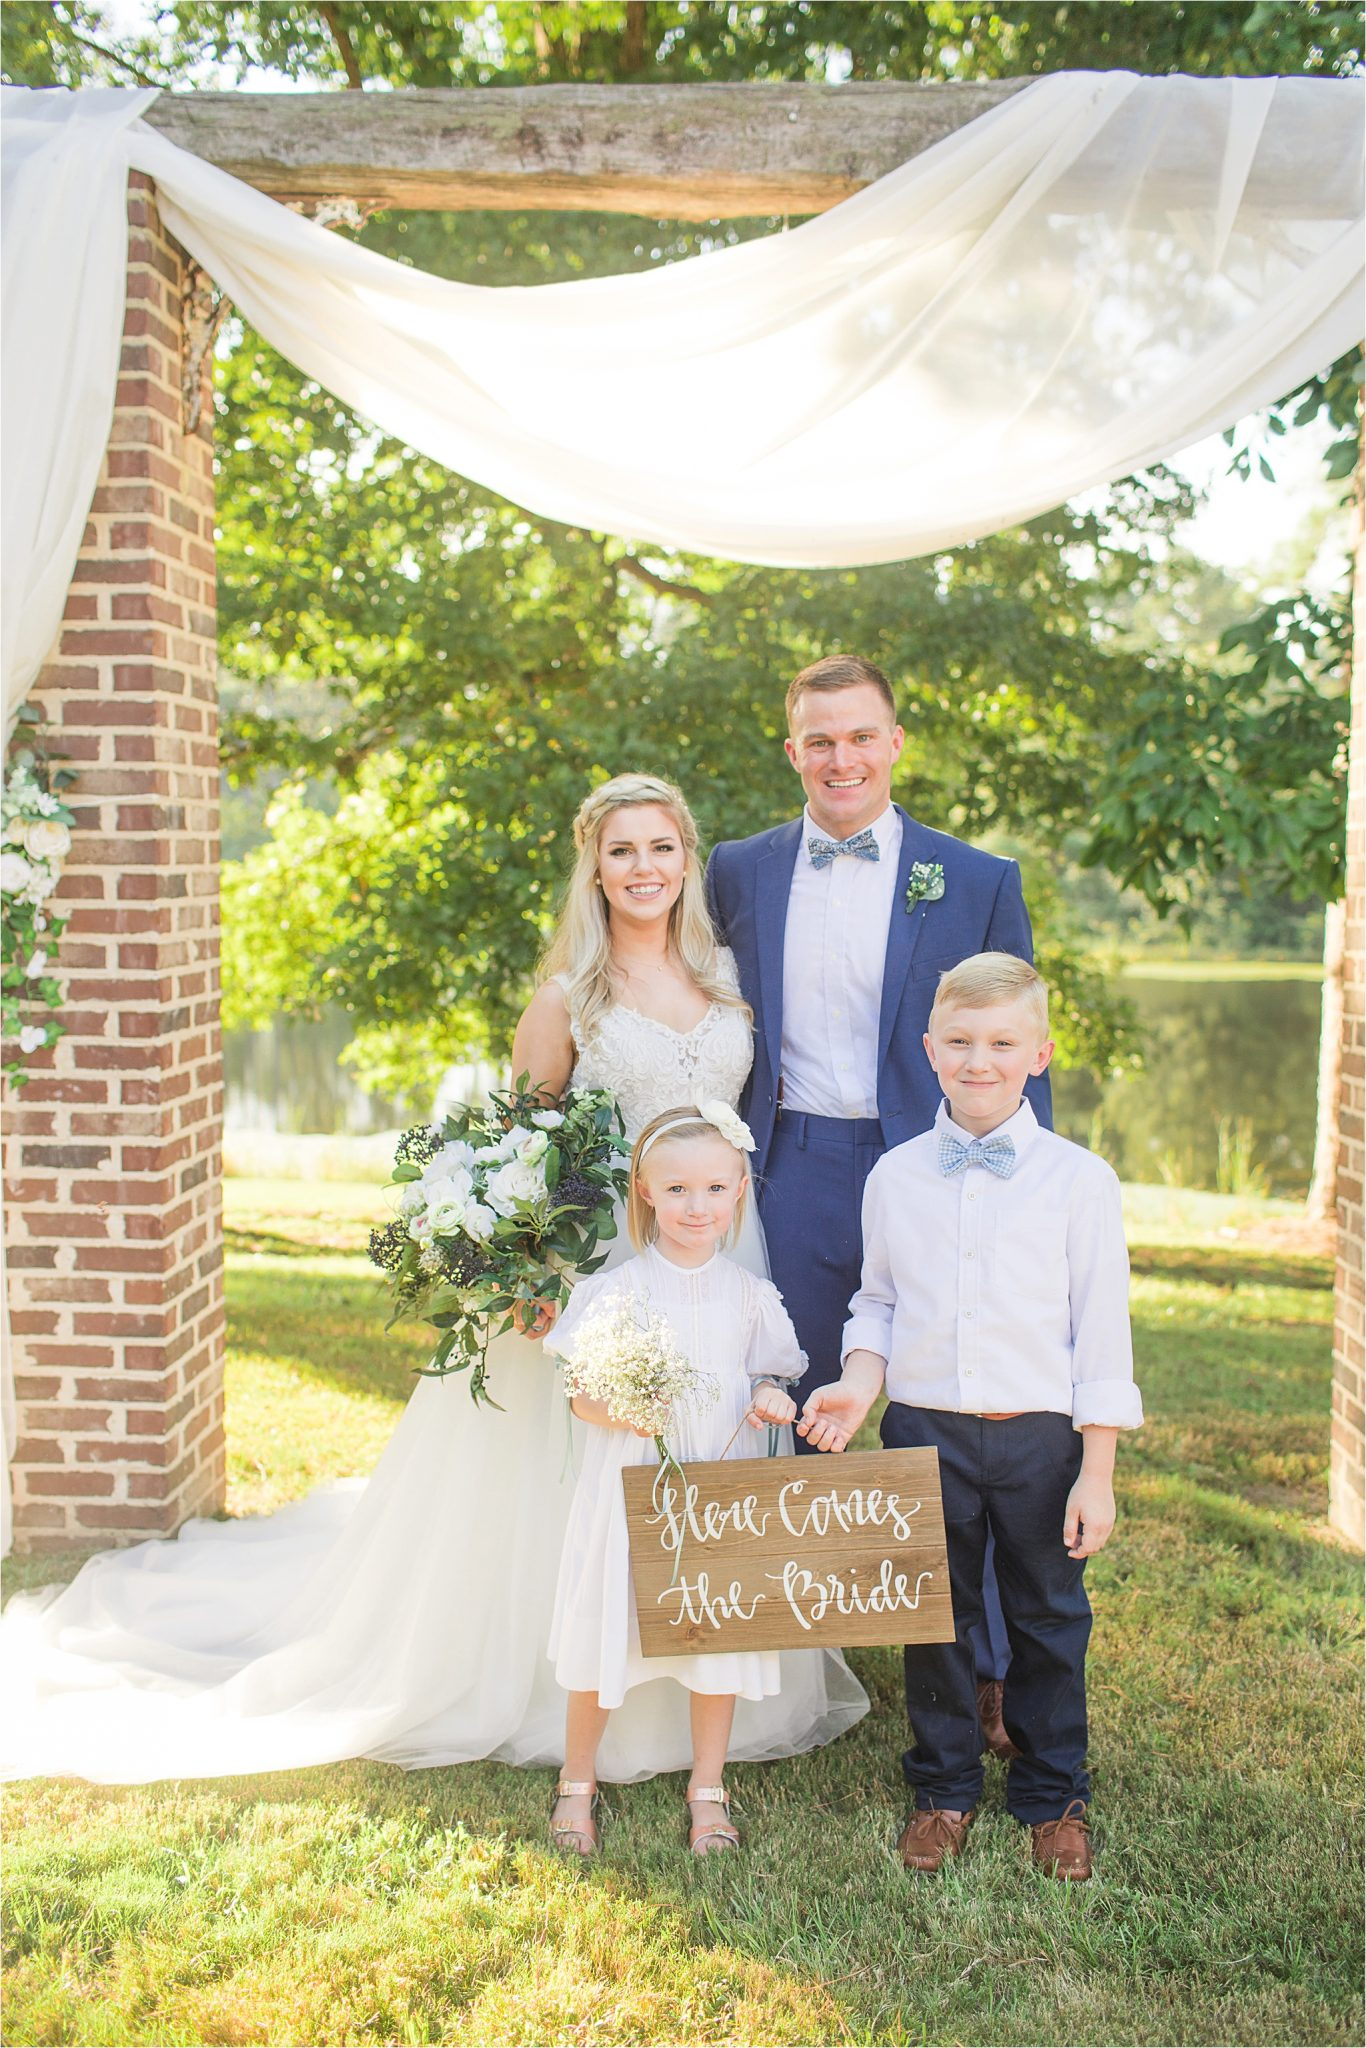 wedding-sign-here comes the bride-flower-girl-ring-bearer-bride-groom